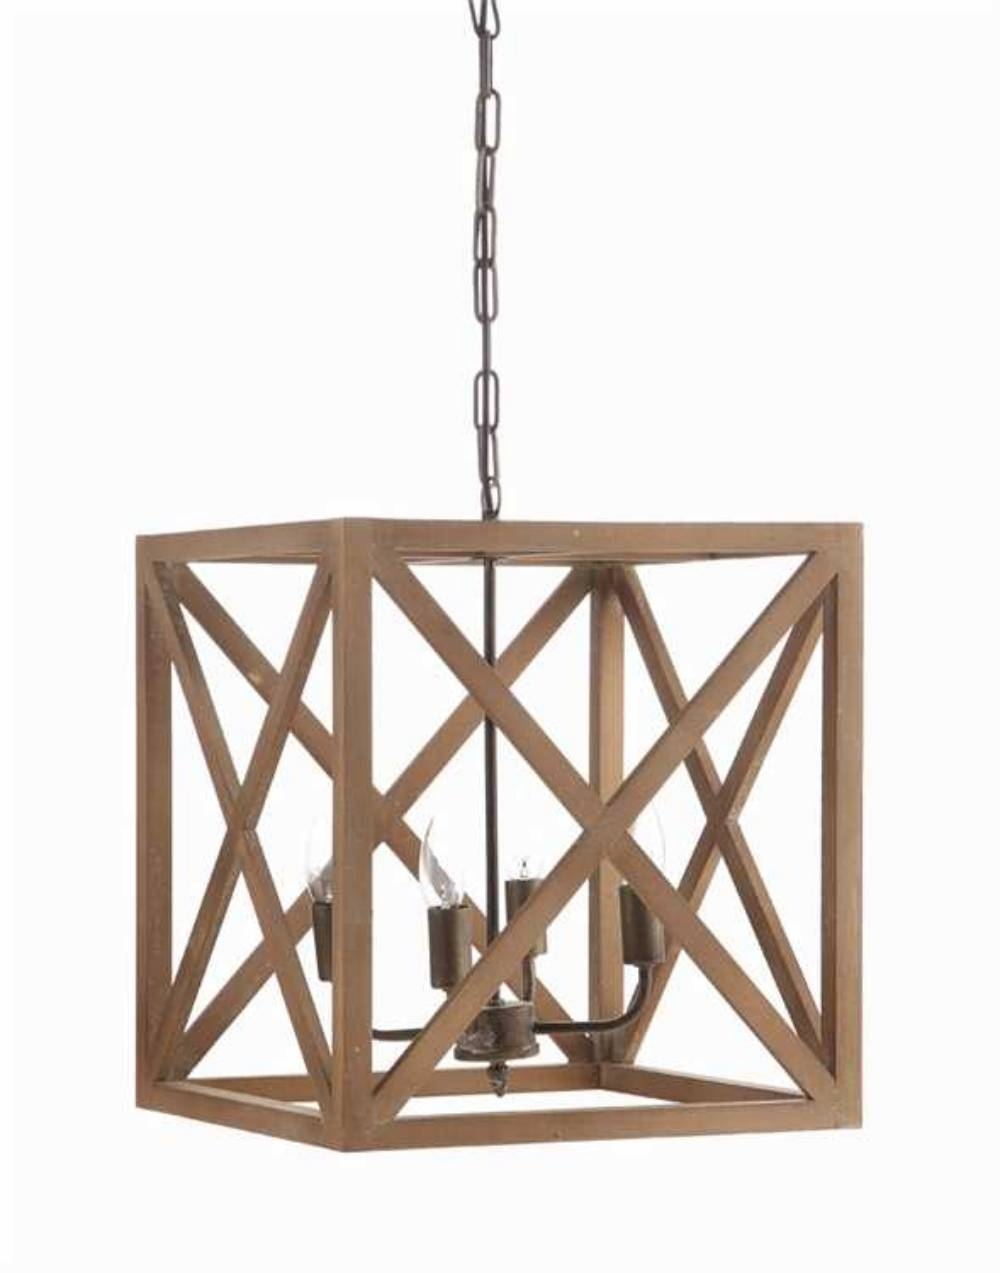 Lucretia Lighting | Tailored Designer Solutions  Chairs Dining throughout Square Pendant Light Fixtures (Image 12 of 15)